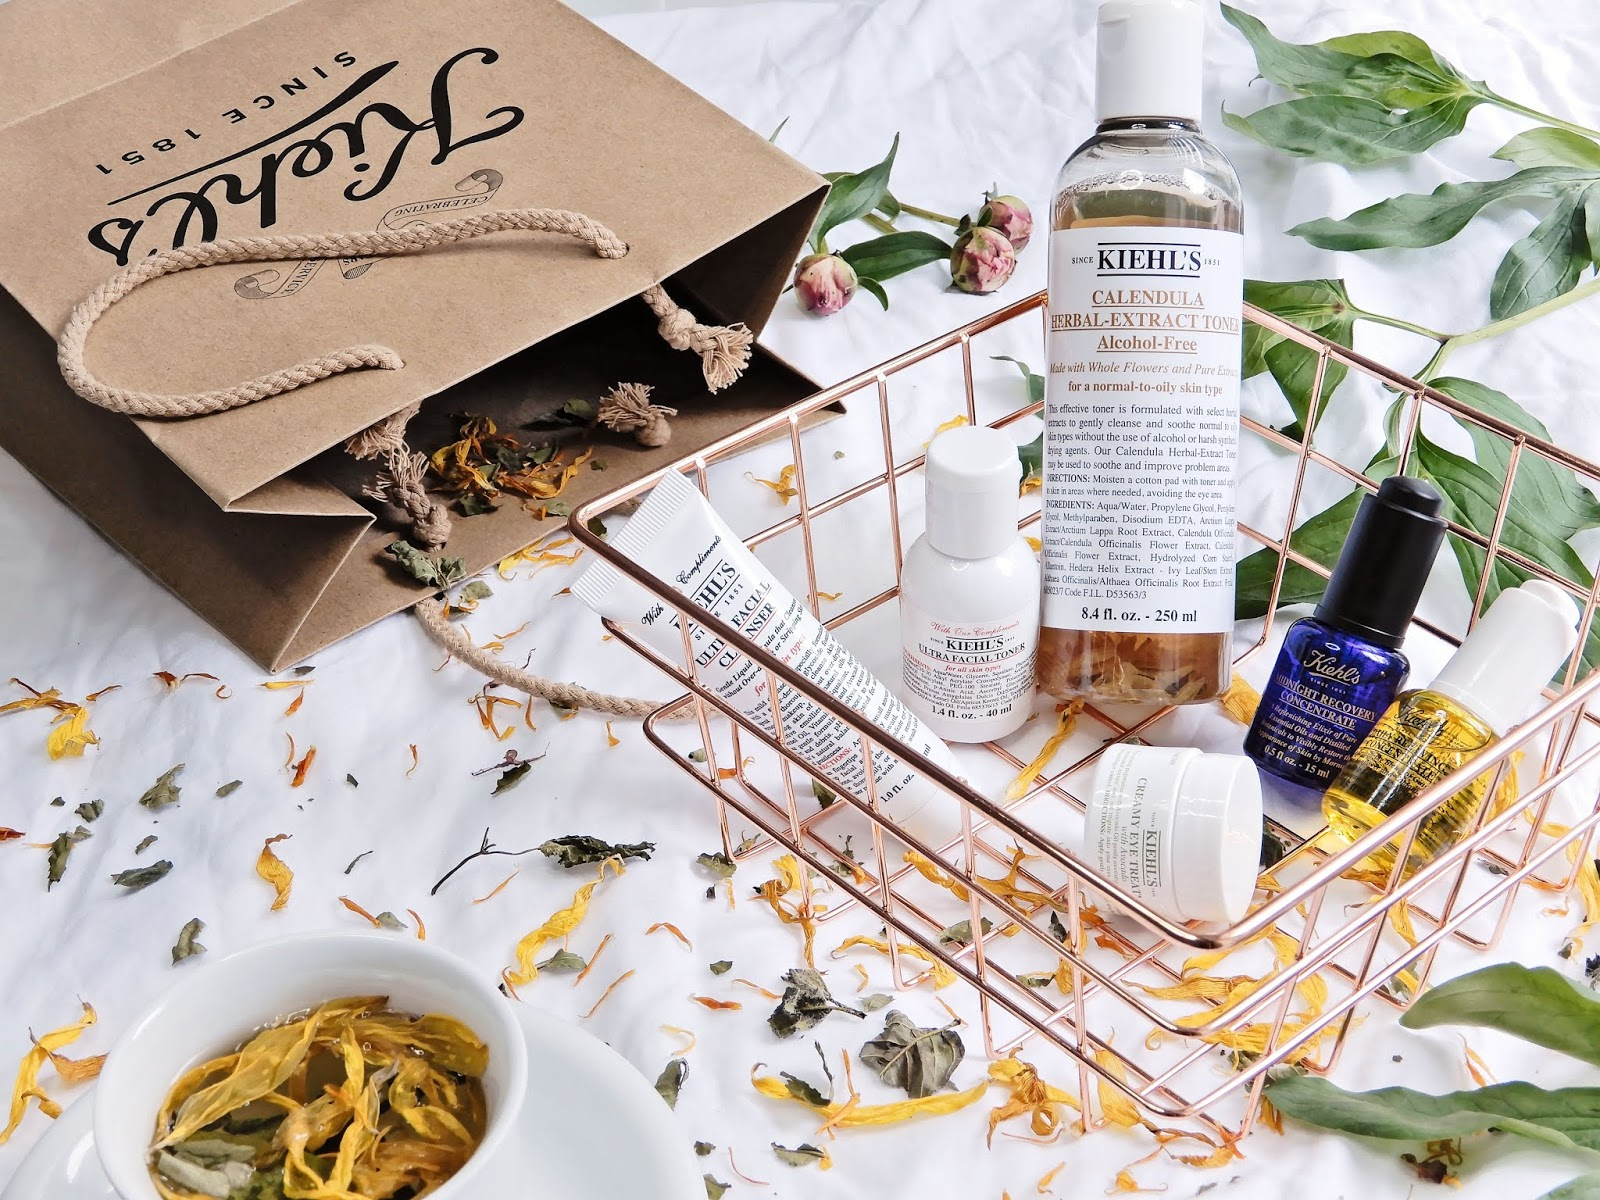 Kiehl's Calendula Herbal Extract Alcohol-Free Toner, Kiehl's Calendula Herbal Extract Alcohol-Free Toner opinia, Kiehl's Calendula Herbal Extract Alcohol-Free Toner recenzja, kiehl's tonik nagietkowy recenzja,